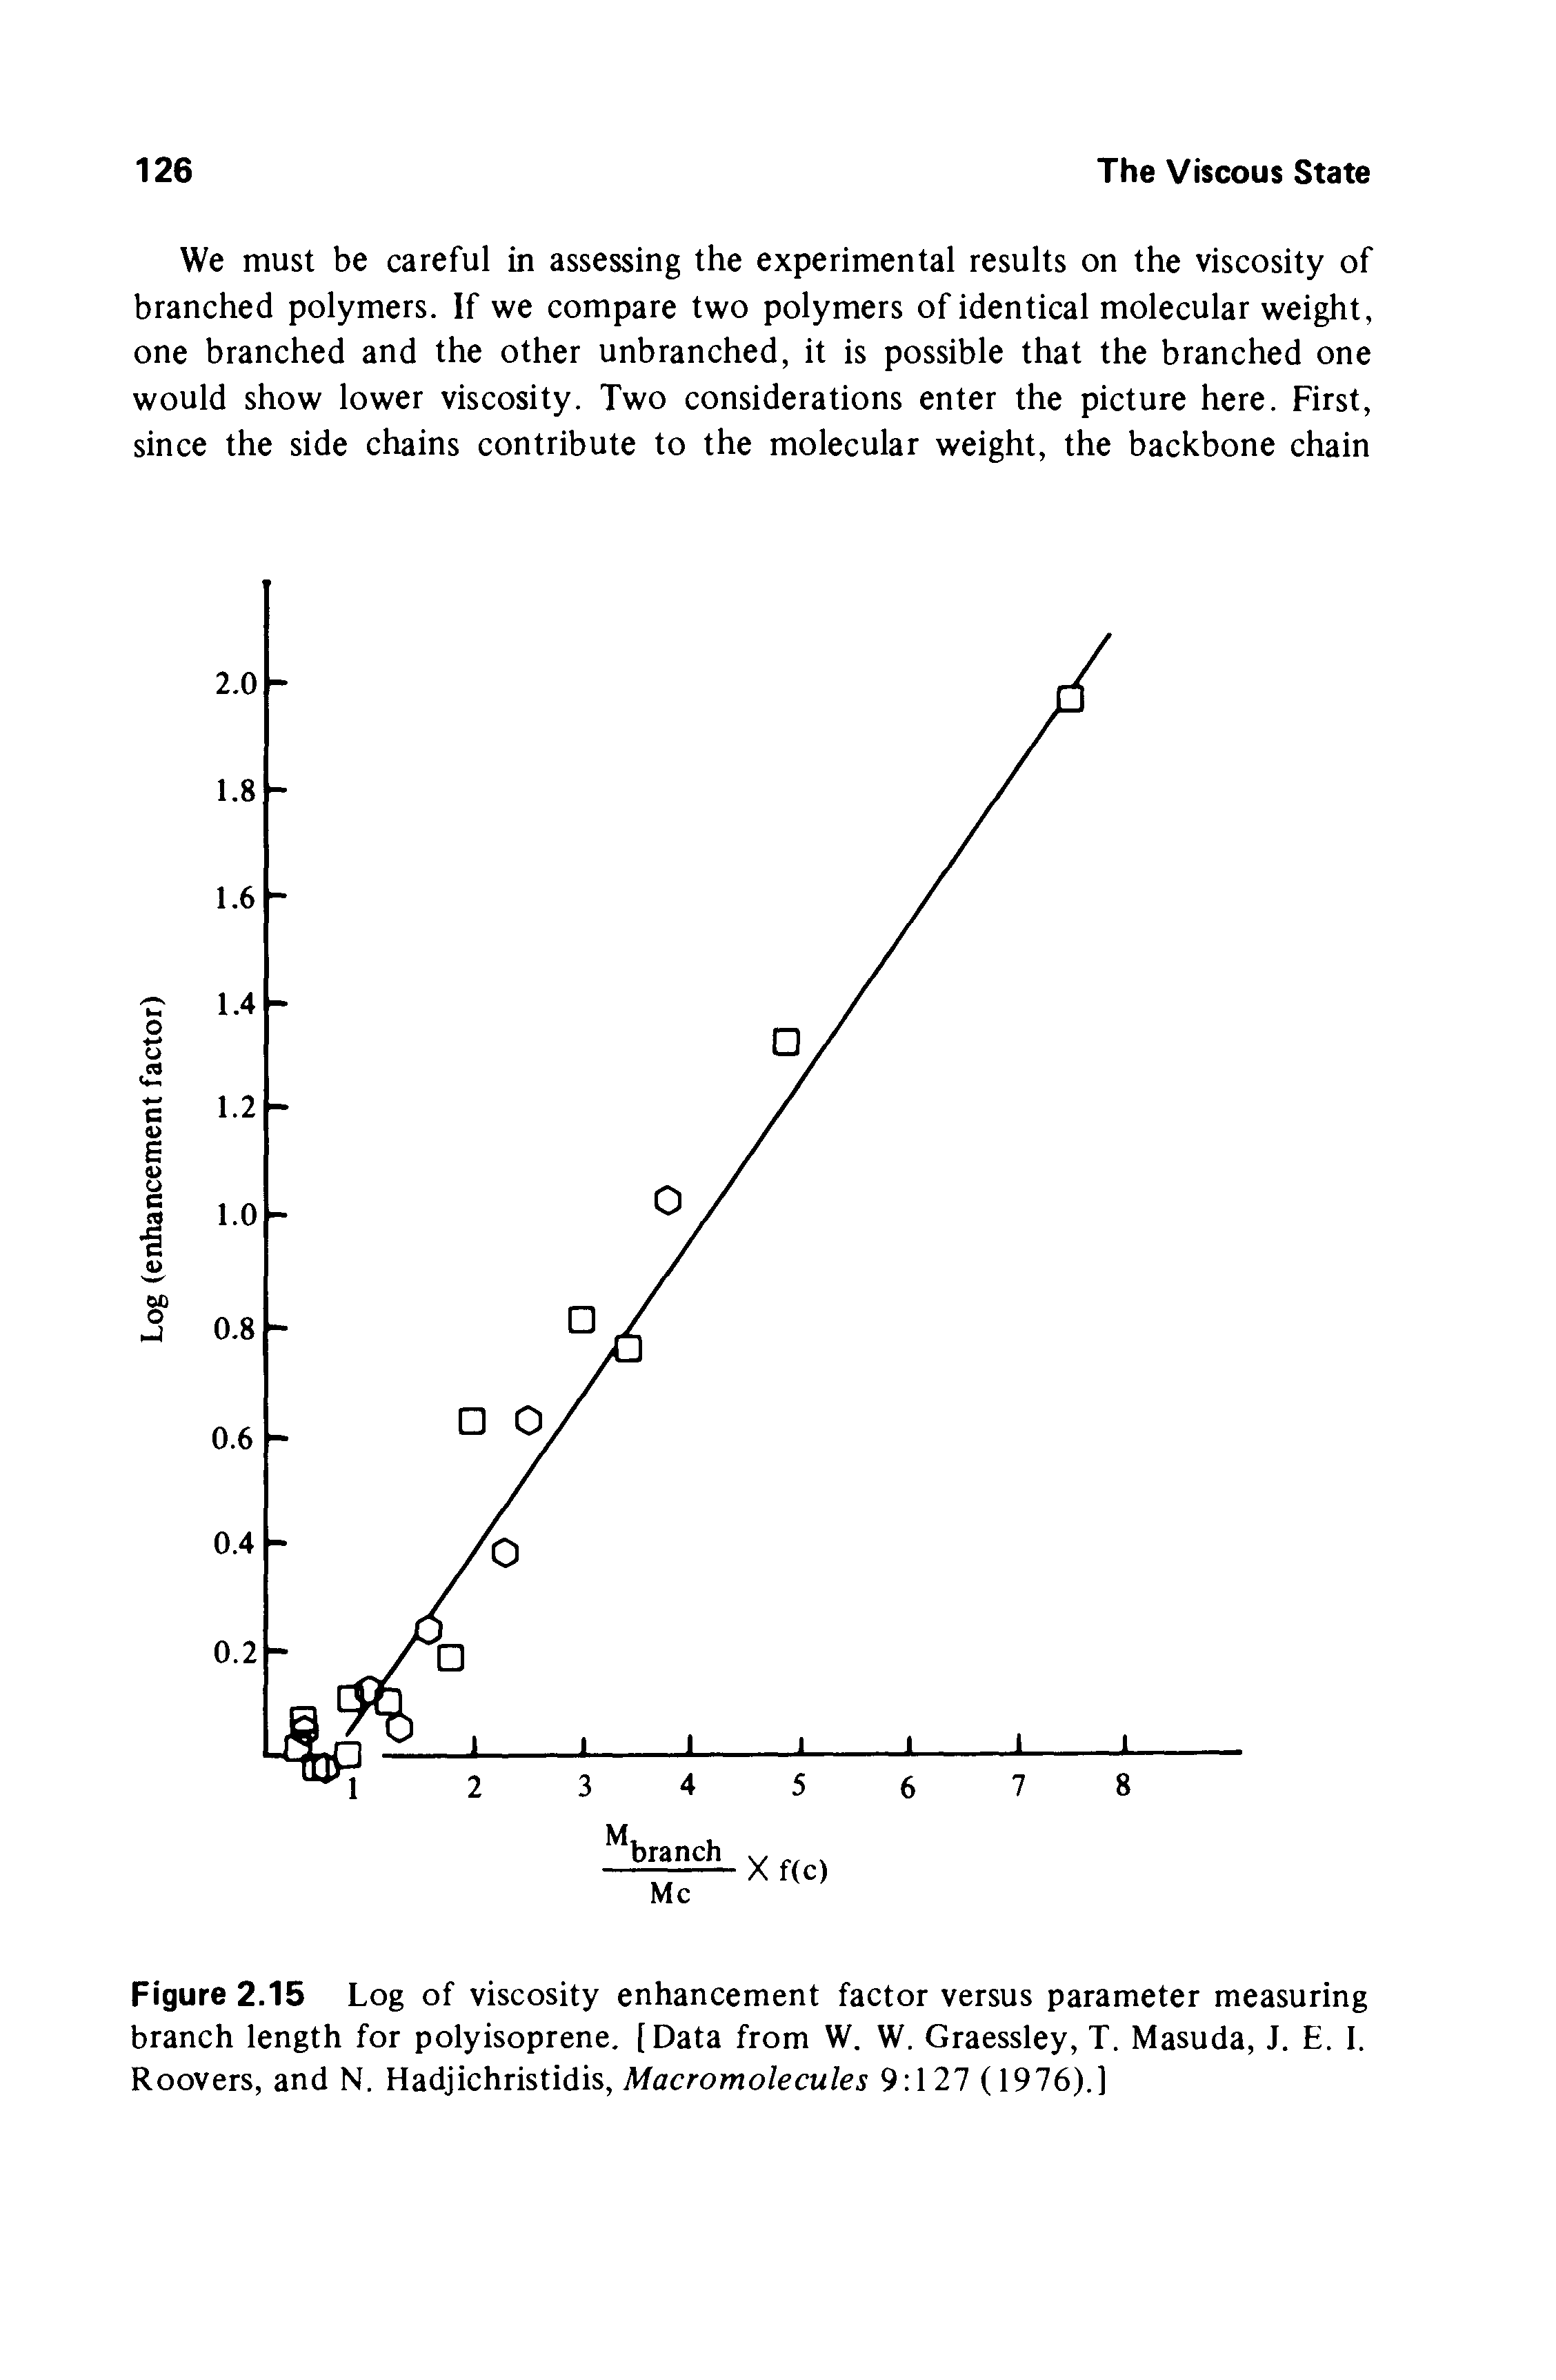 Figure 2.15 Log of viscosity enhancement factor versus parameter measuring branch length for polyisoprene, [Data from W. W. Graessley, T. Masuda, J. E. I. Roovers, and N. Hadjichristidis, Afacromo/ecu/ej 9 127 (1976).]...